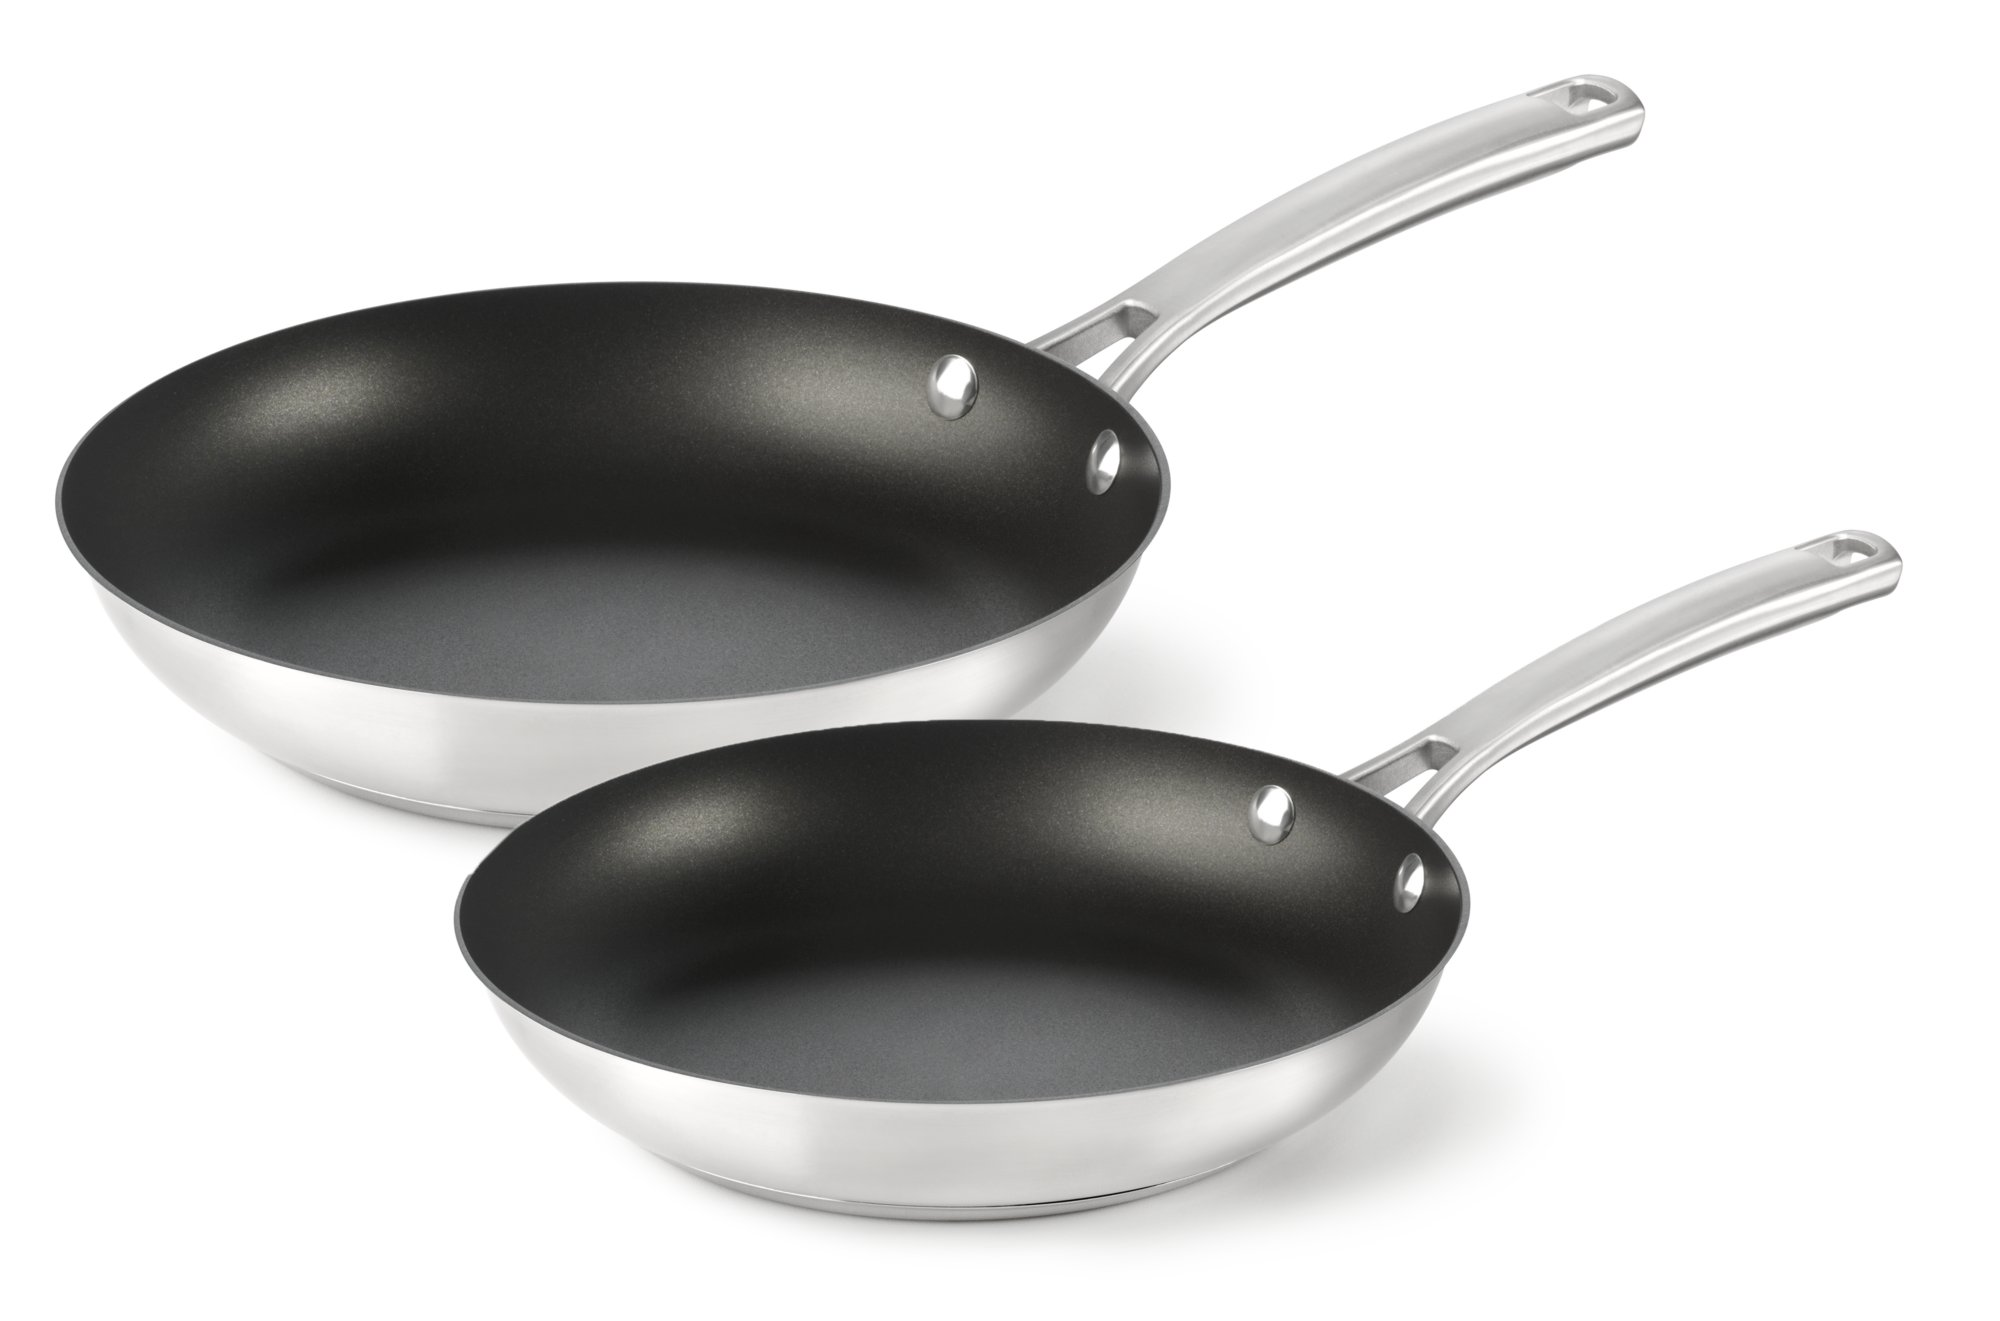 Calphalon Kitchen Essentials Stainless Steel 8-in. and 10-in ...